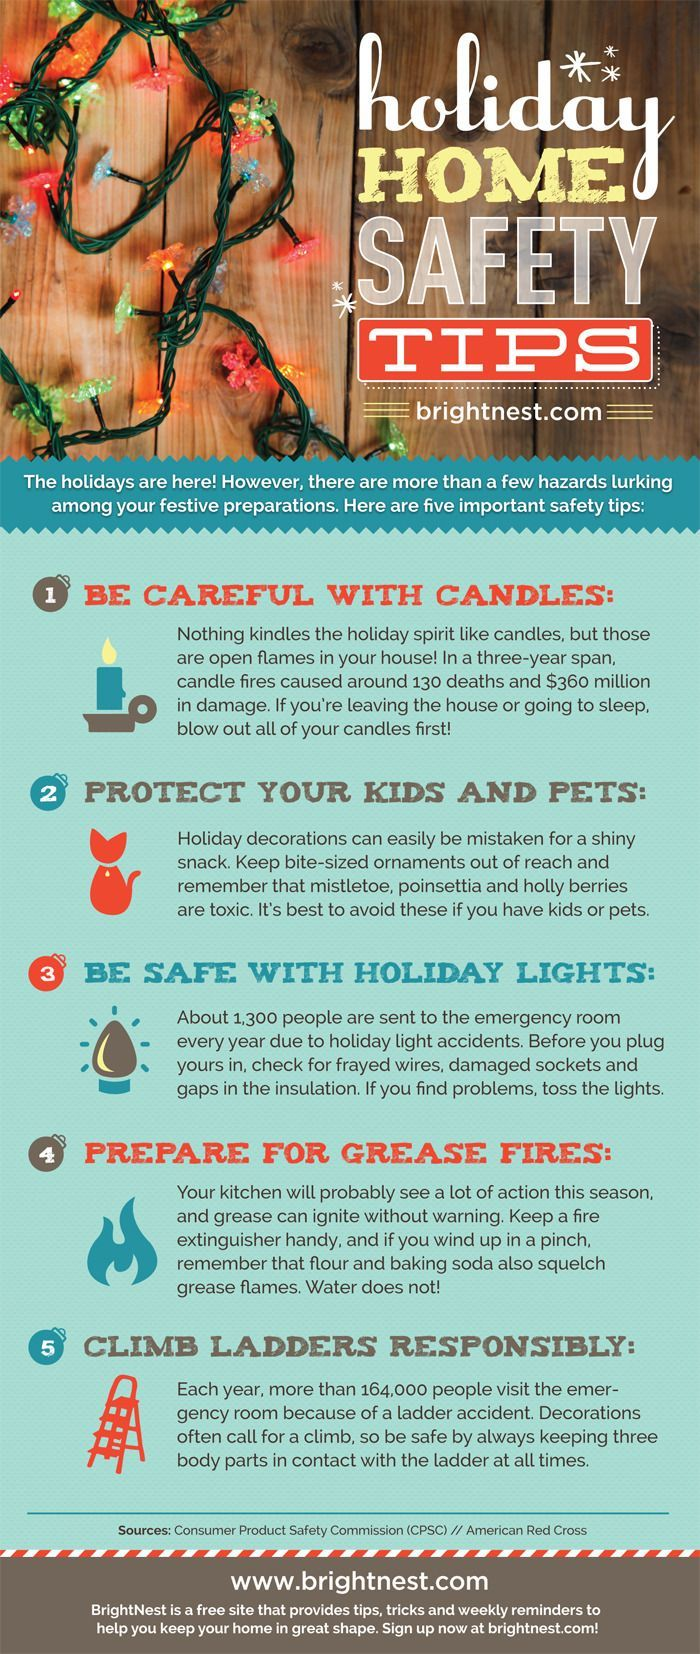 Fire Prevention Essay Idea For High School Educational Website Cadet Program And More About E Home Safety Tip Tips